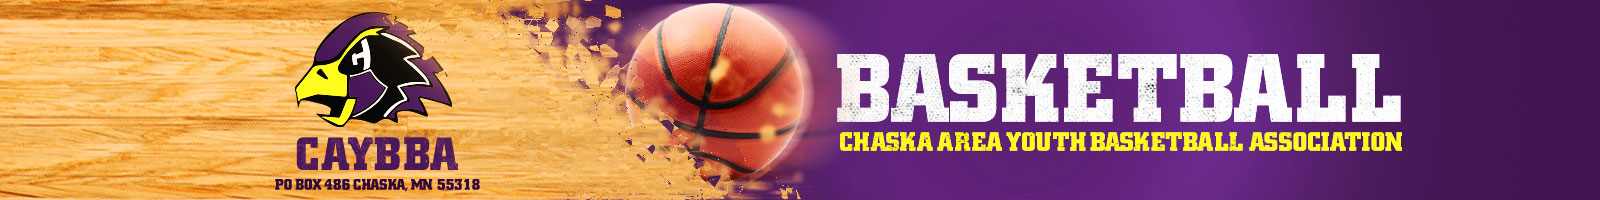 CHASKA AREA YOUTH BASKETBALL ASSOCIATION, Basketball, Point, Court